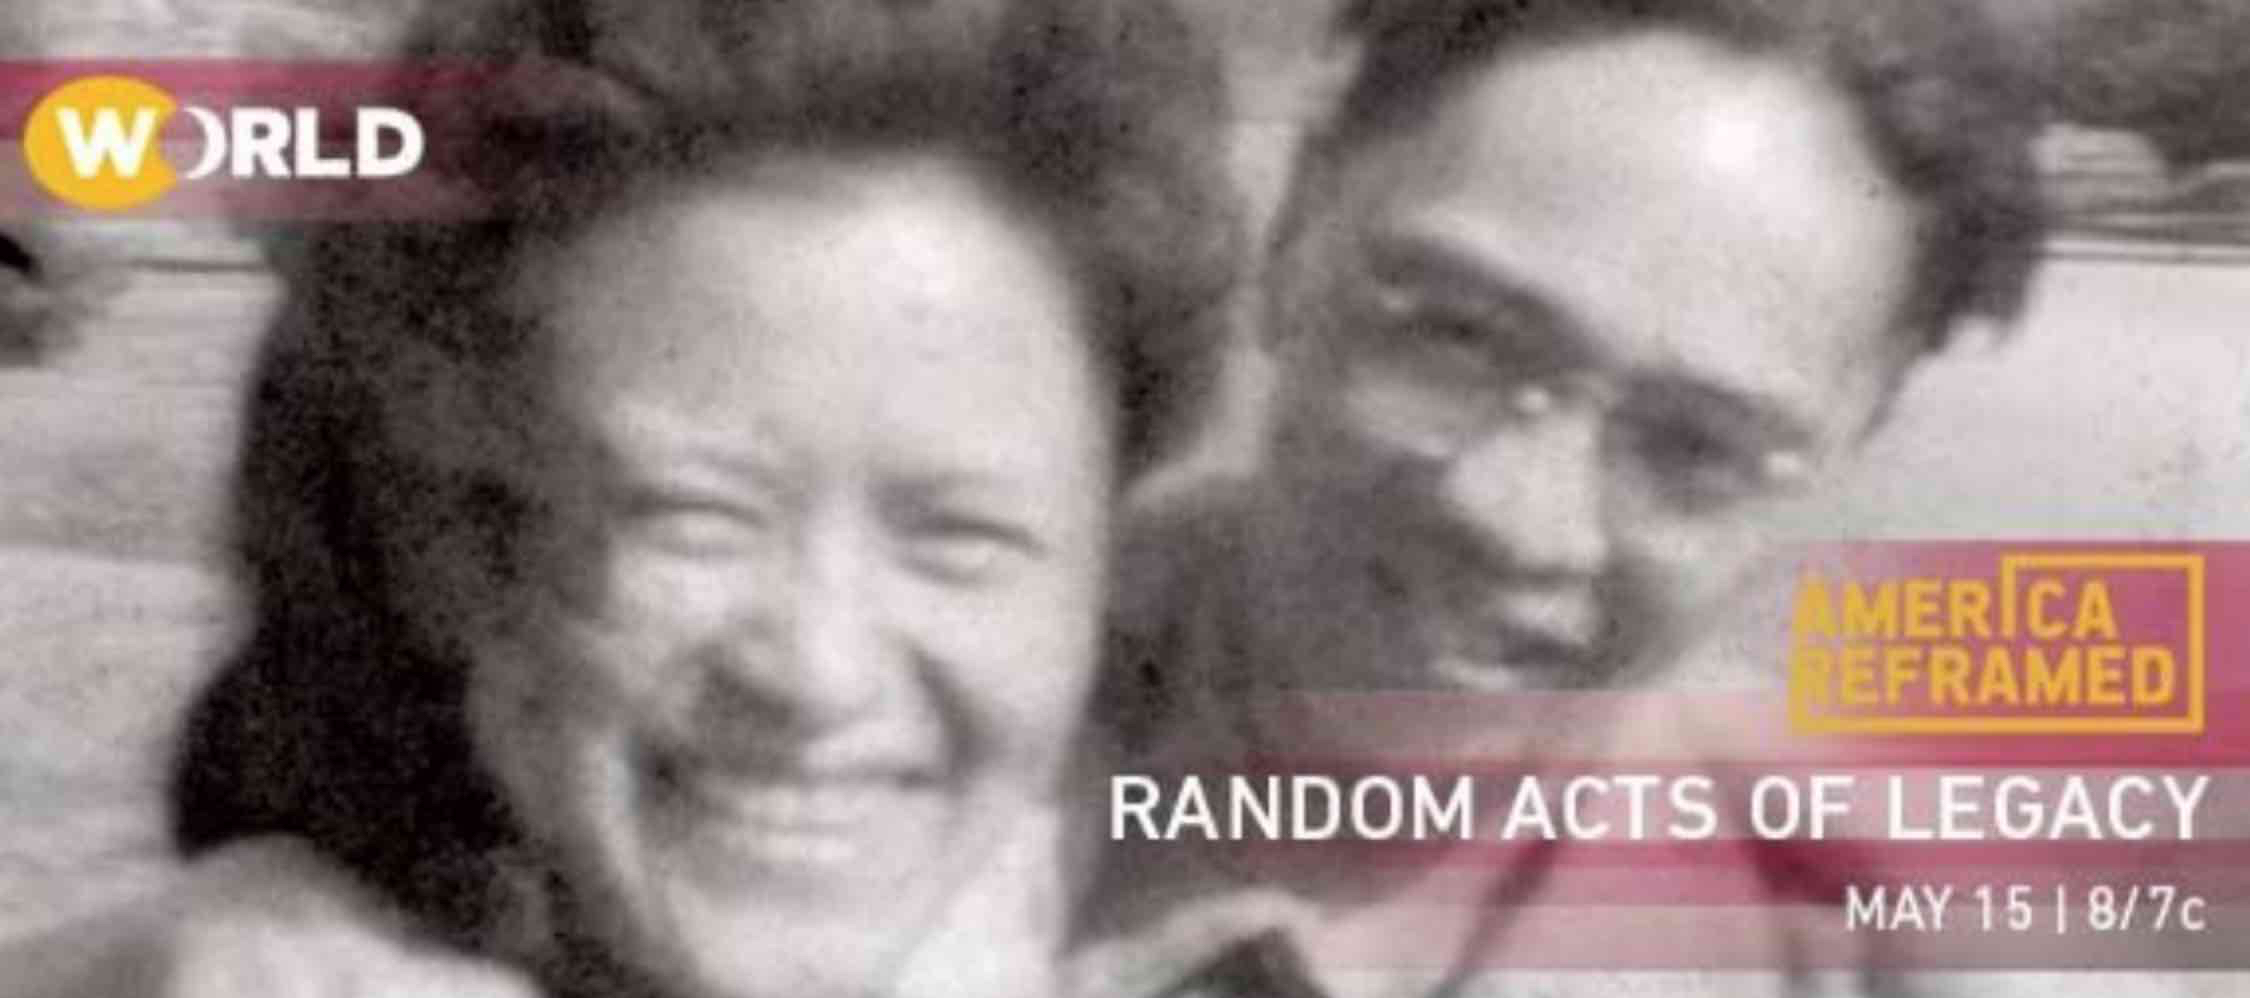 AC WORLD CHANNEL AMERICA REFRAMED RANDOM ACTS OF LEGACY 2018 05 15 8PM EST 7PM CENTRAL